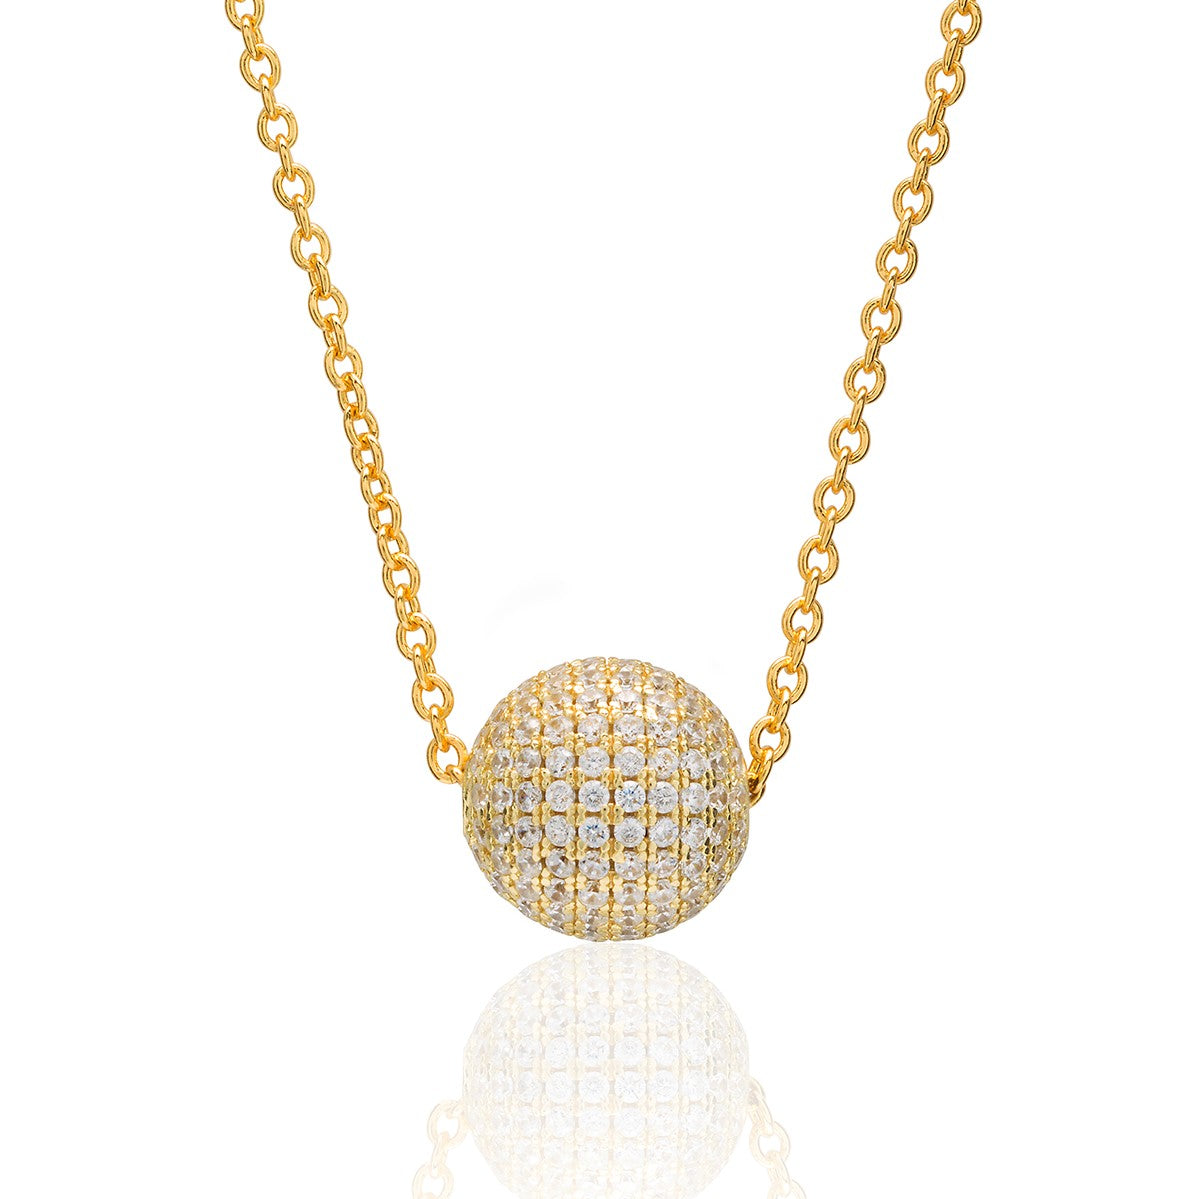 Cubic Zirconia Geometric Pave Ball Bead Necklace